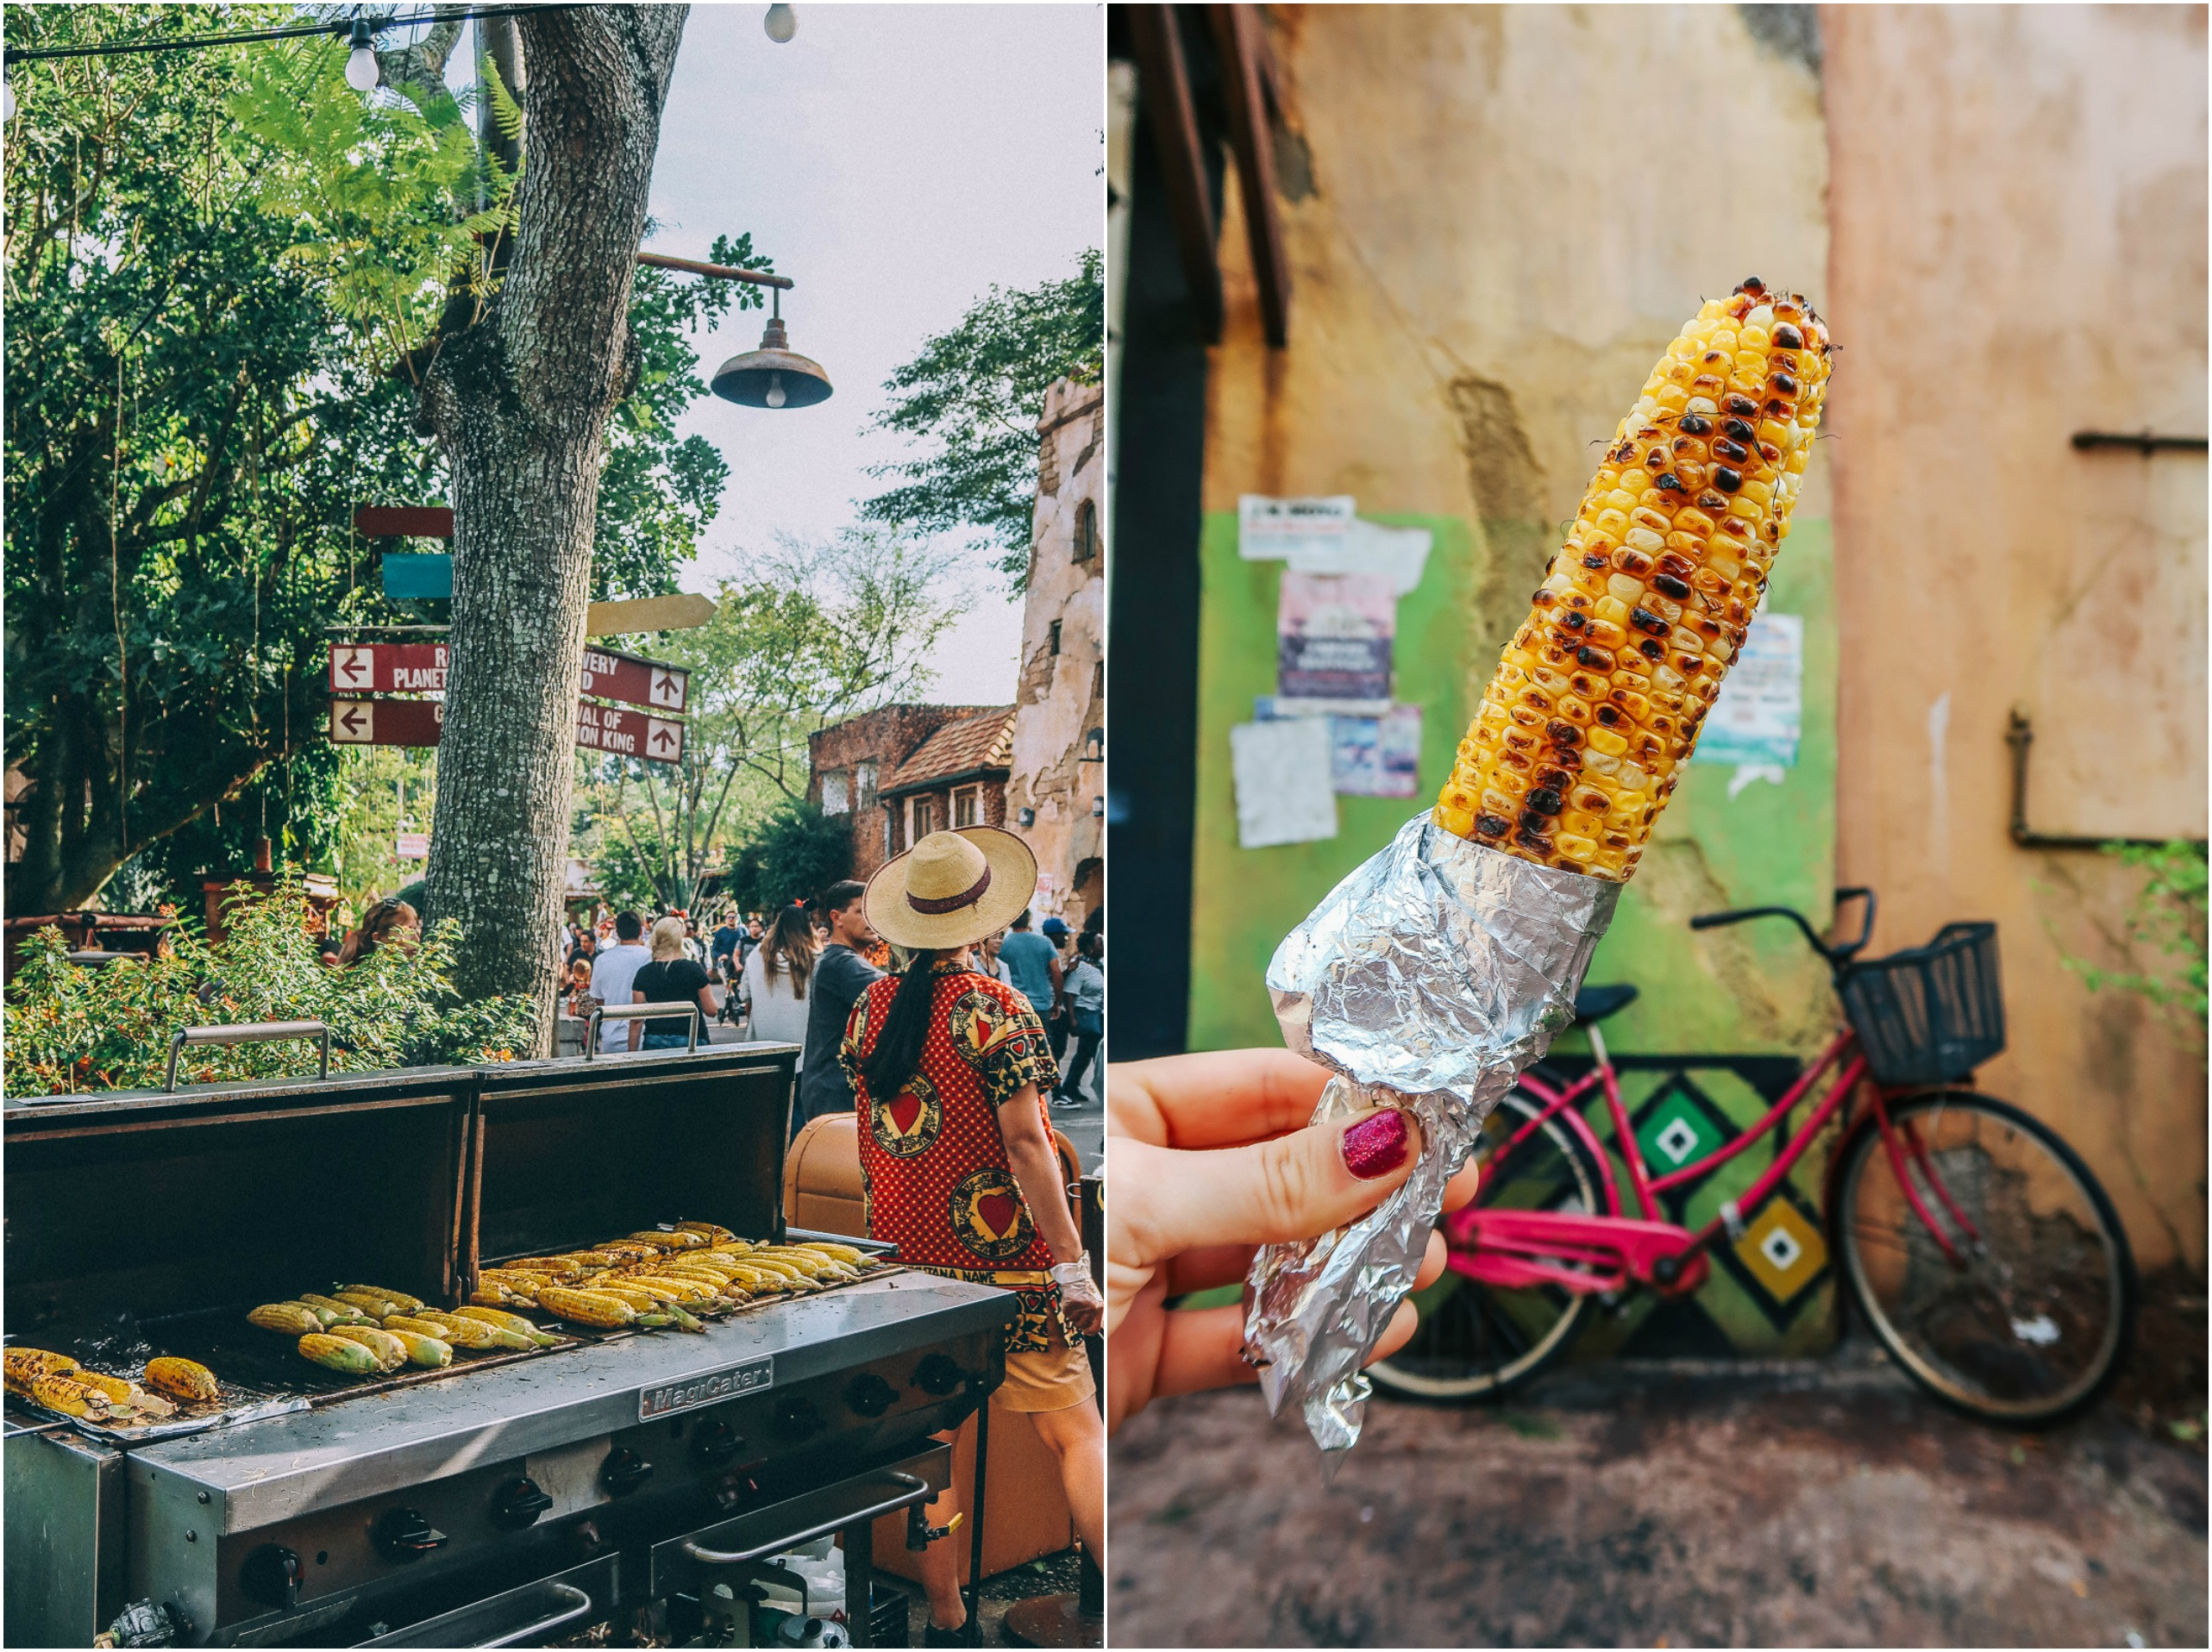 Disney's Animal Kingdom Travel Guide Eats Food Grilled Corn Vegan Eats Healthy